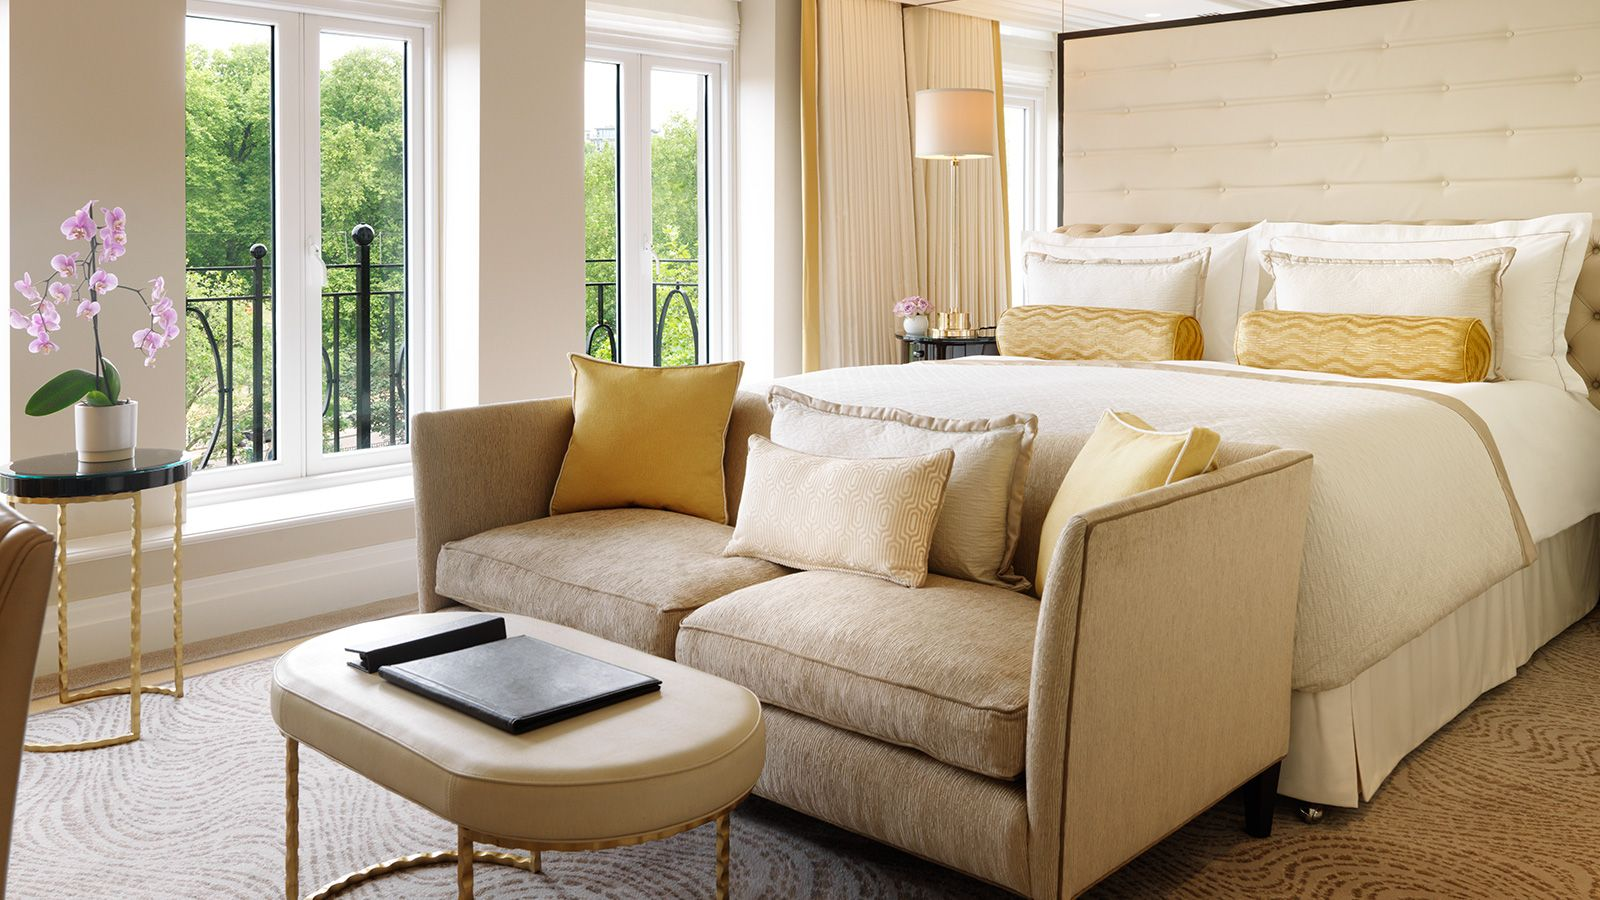 Junior Suite at The Wellesley Knightsbridge